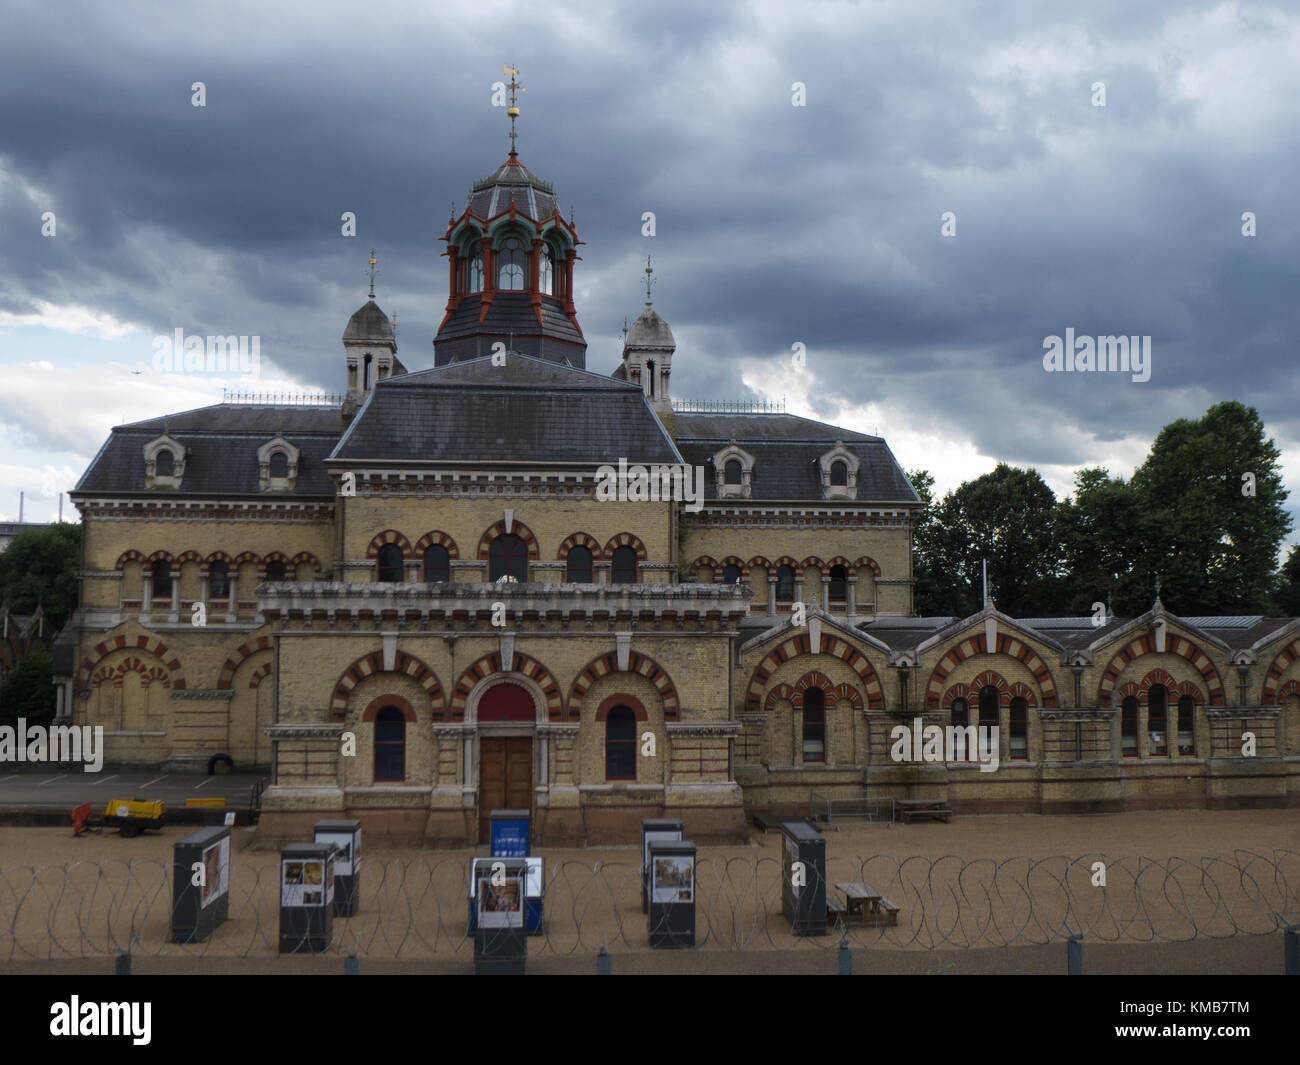 Abbey Mills Pumping Station, Stratford, East London - Stock Image